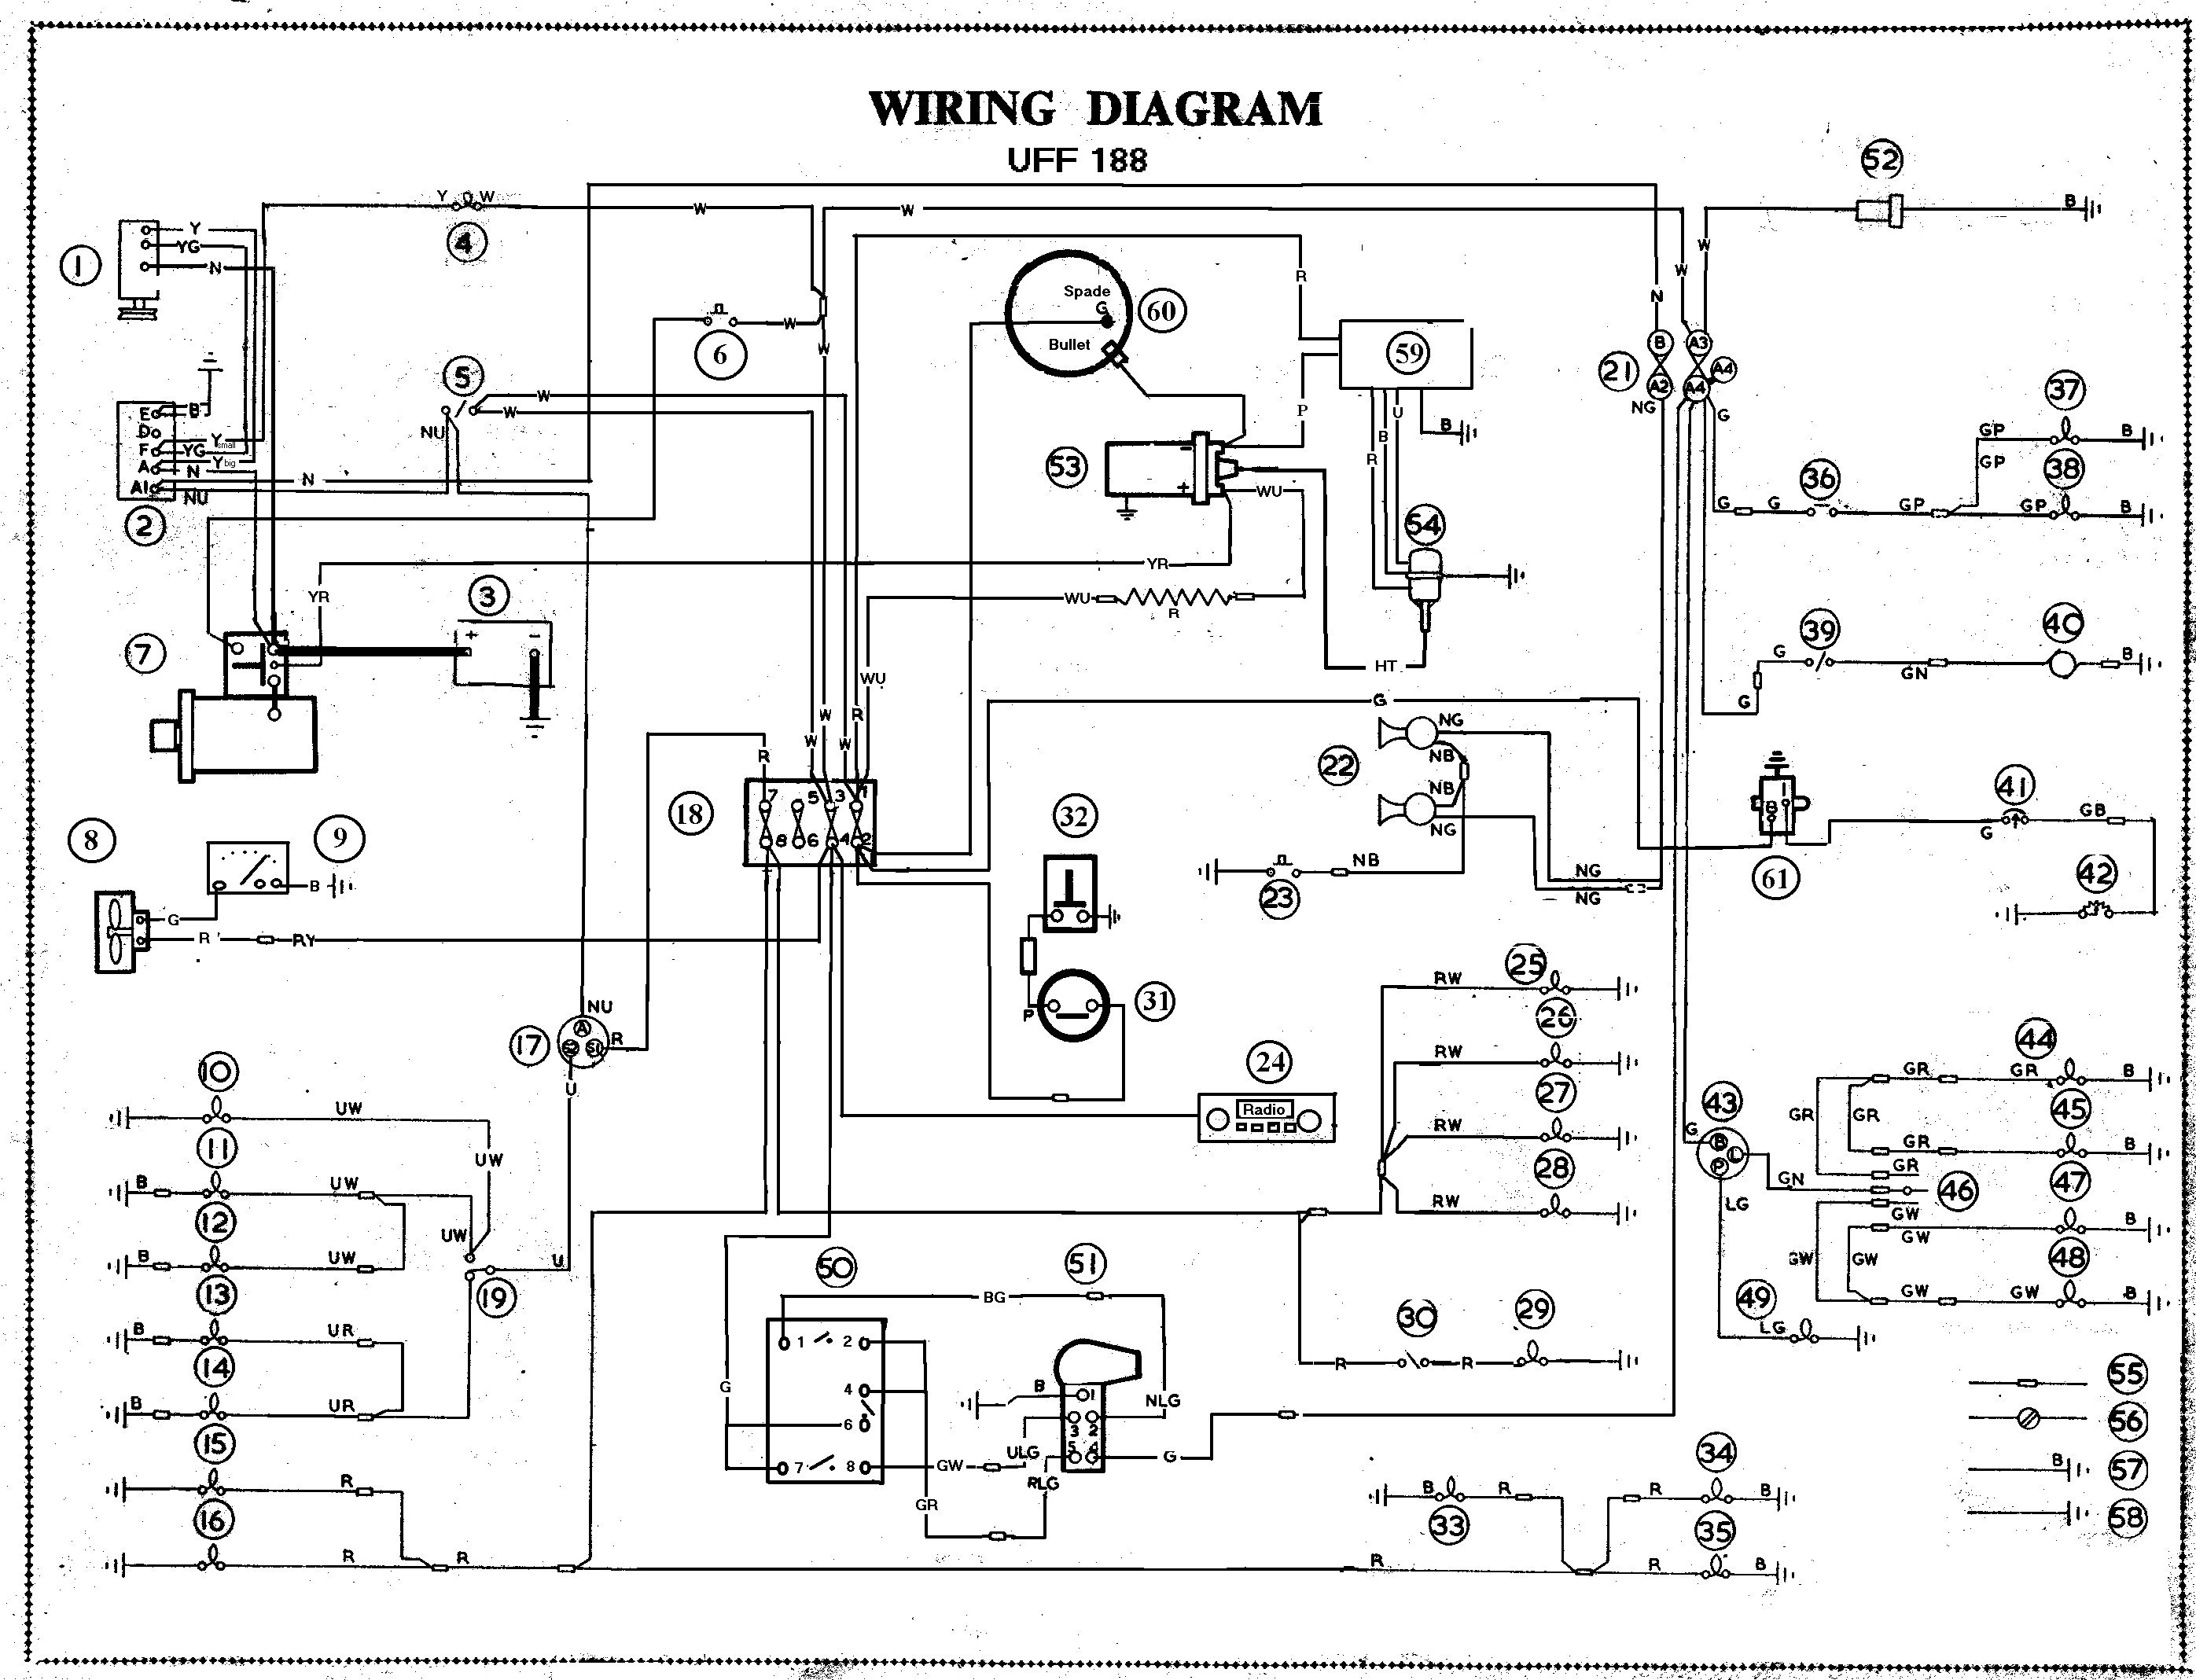 Surprising Electric Wiring System Auto Electrical Wiring Diagram Wiring Cloud Ymoonsalvmohammedshrineorg